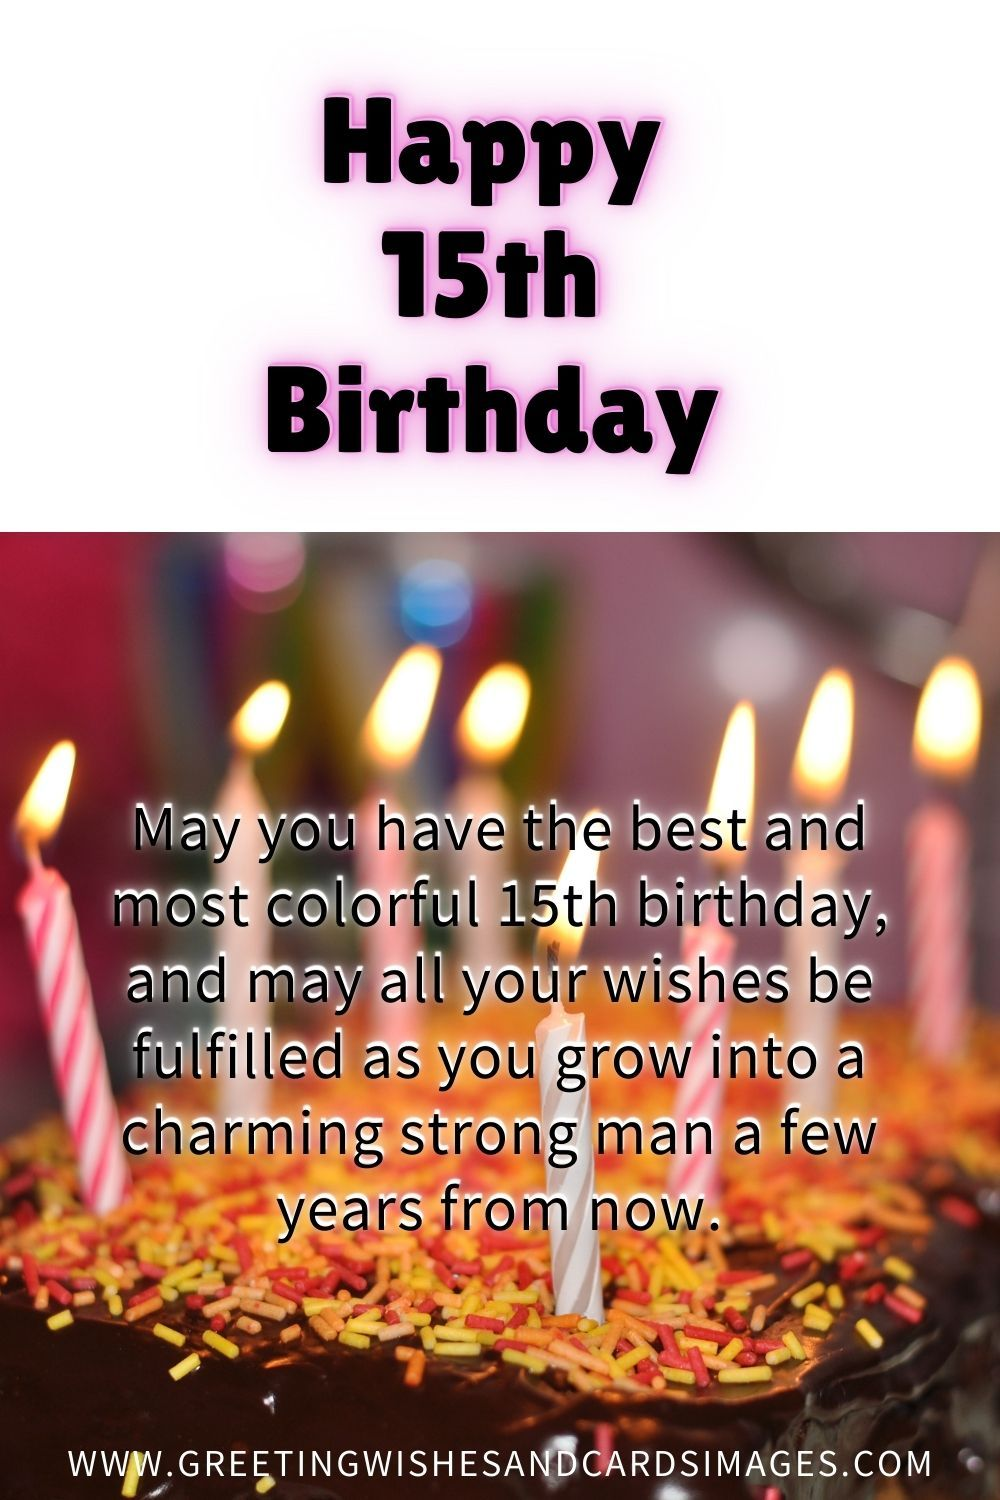 Best Happy 15th Birthday Wishes And Images Happy 15th Birthday Birthday Wishes And Images 15th Birthday Wishes